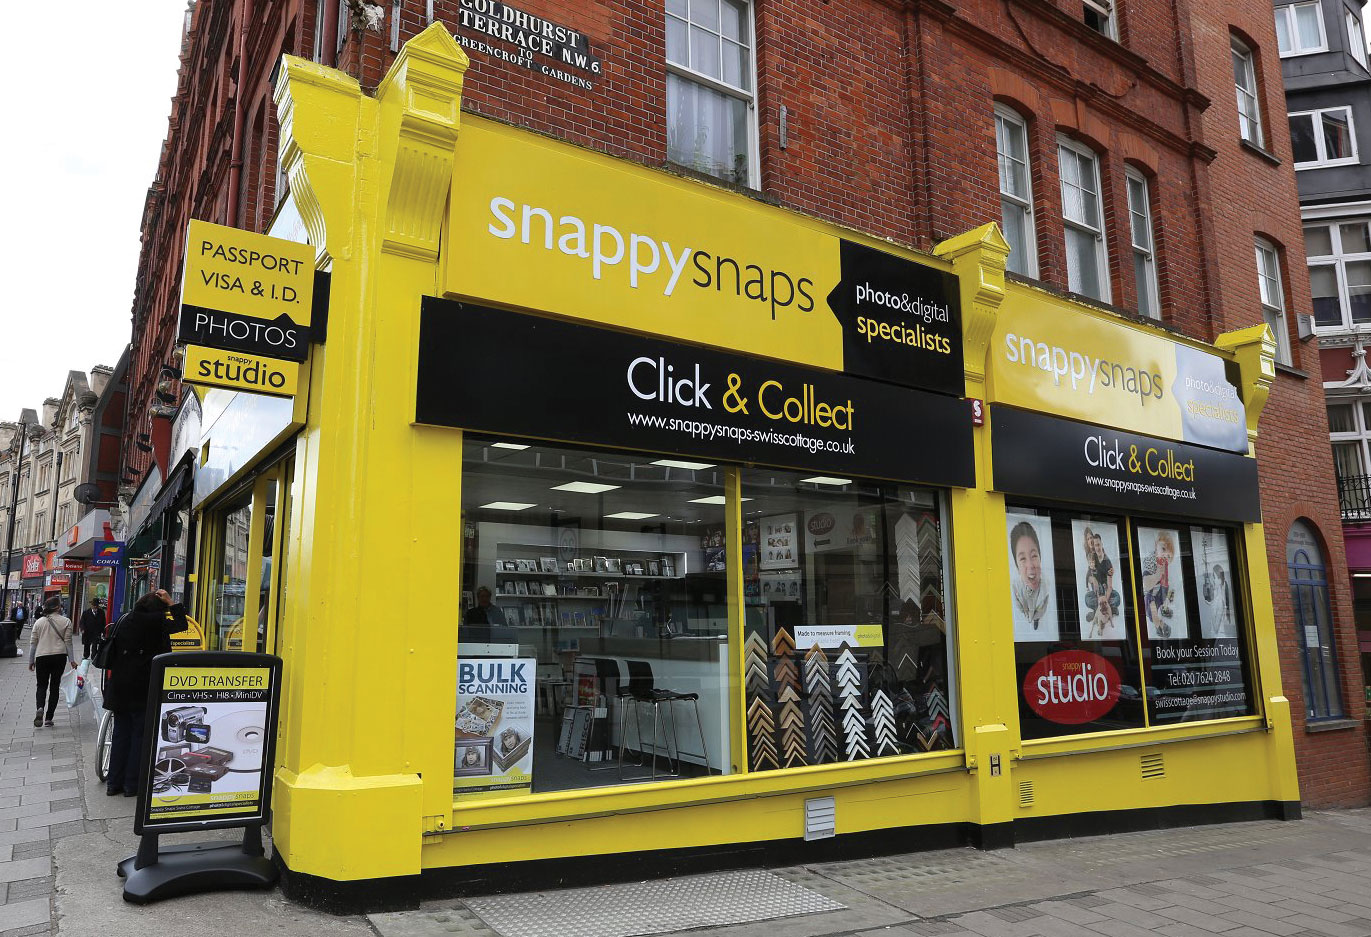 Snappy Snaps click and collect shop